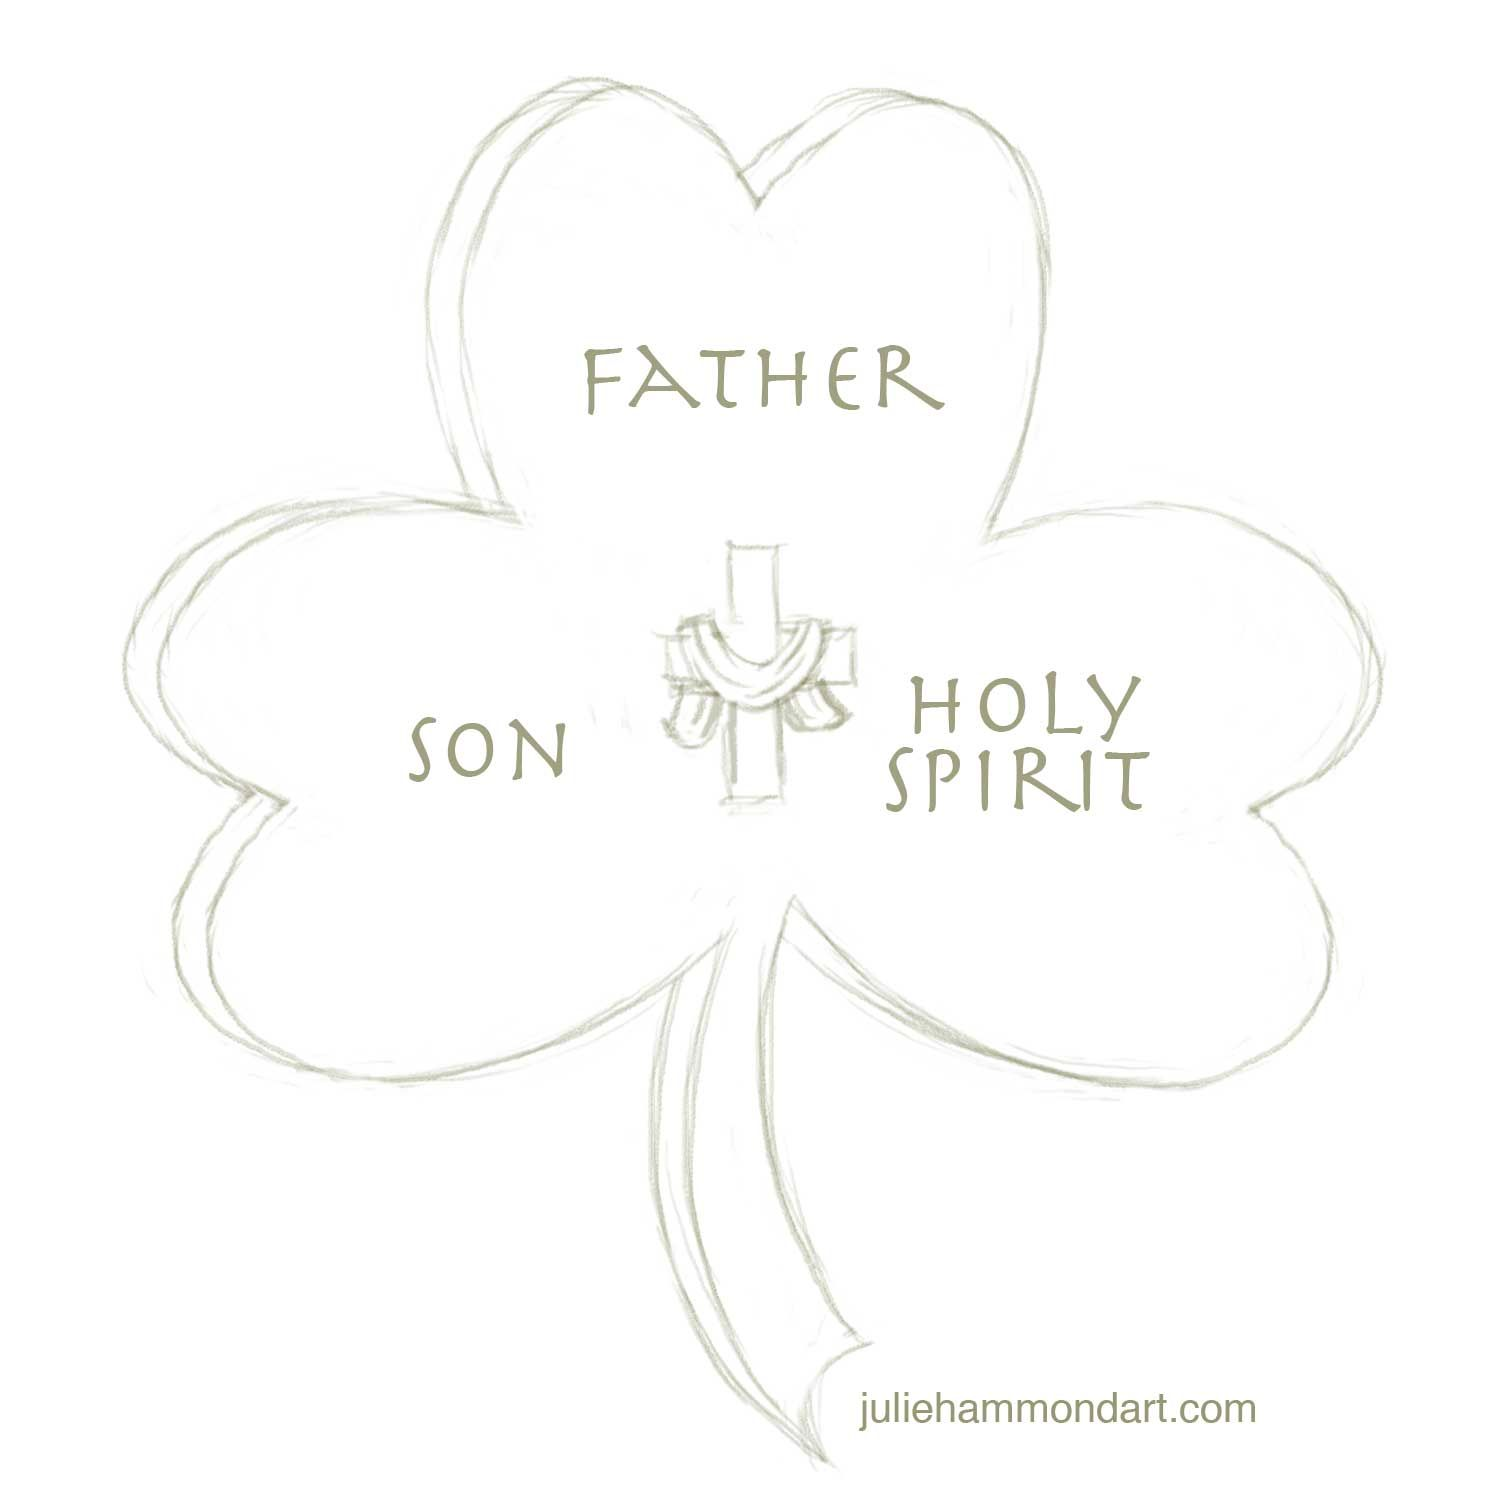 Trinity Shamrock Coloring page | school ideas | Pinterest | Bible ...